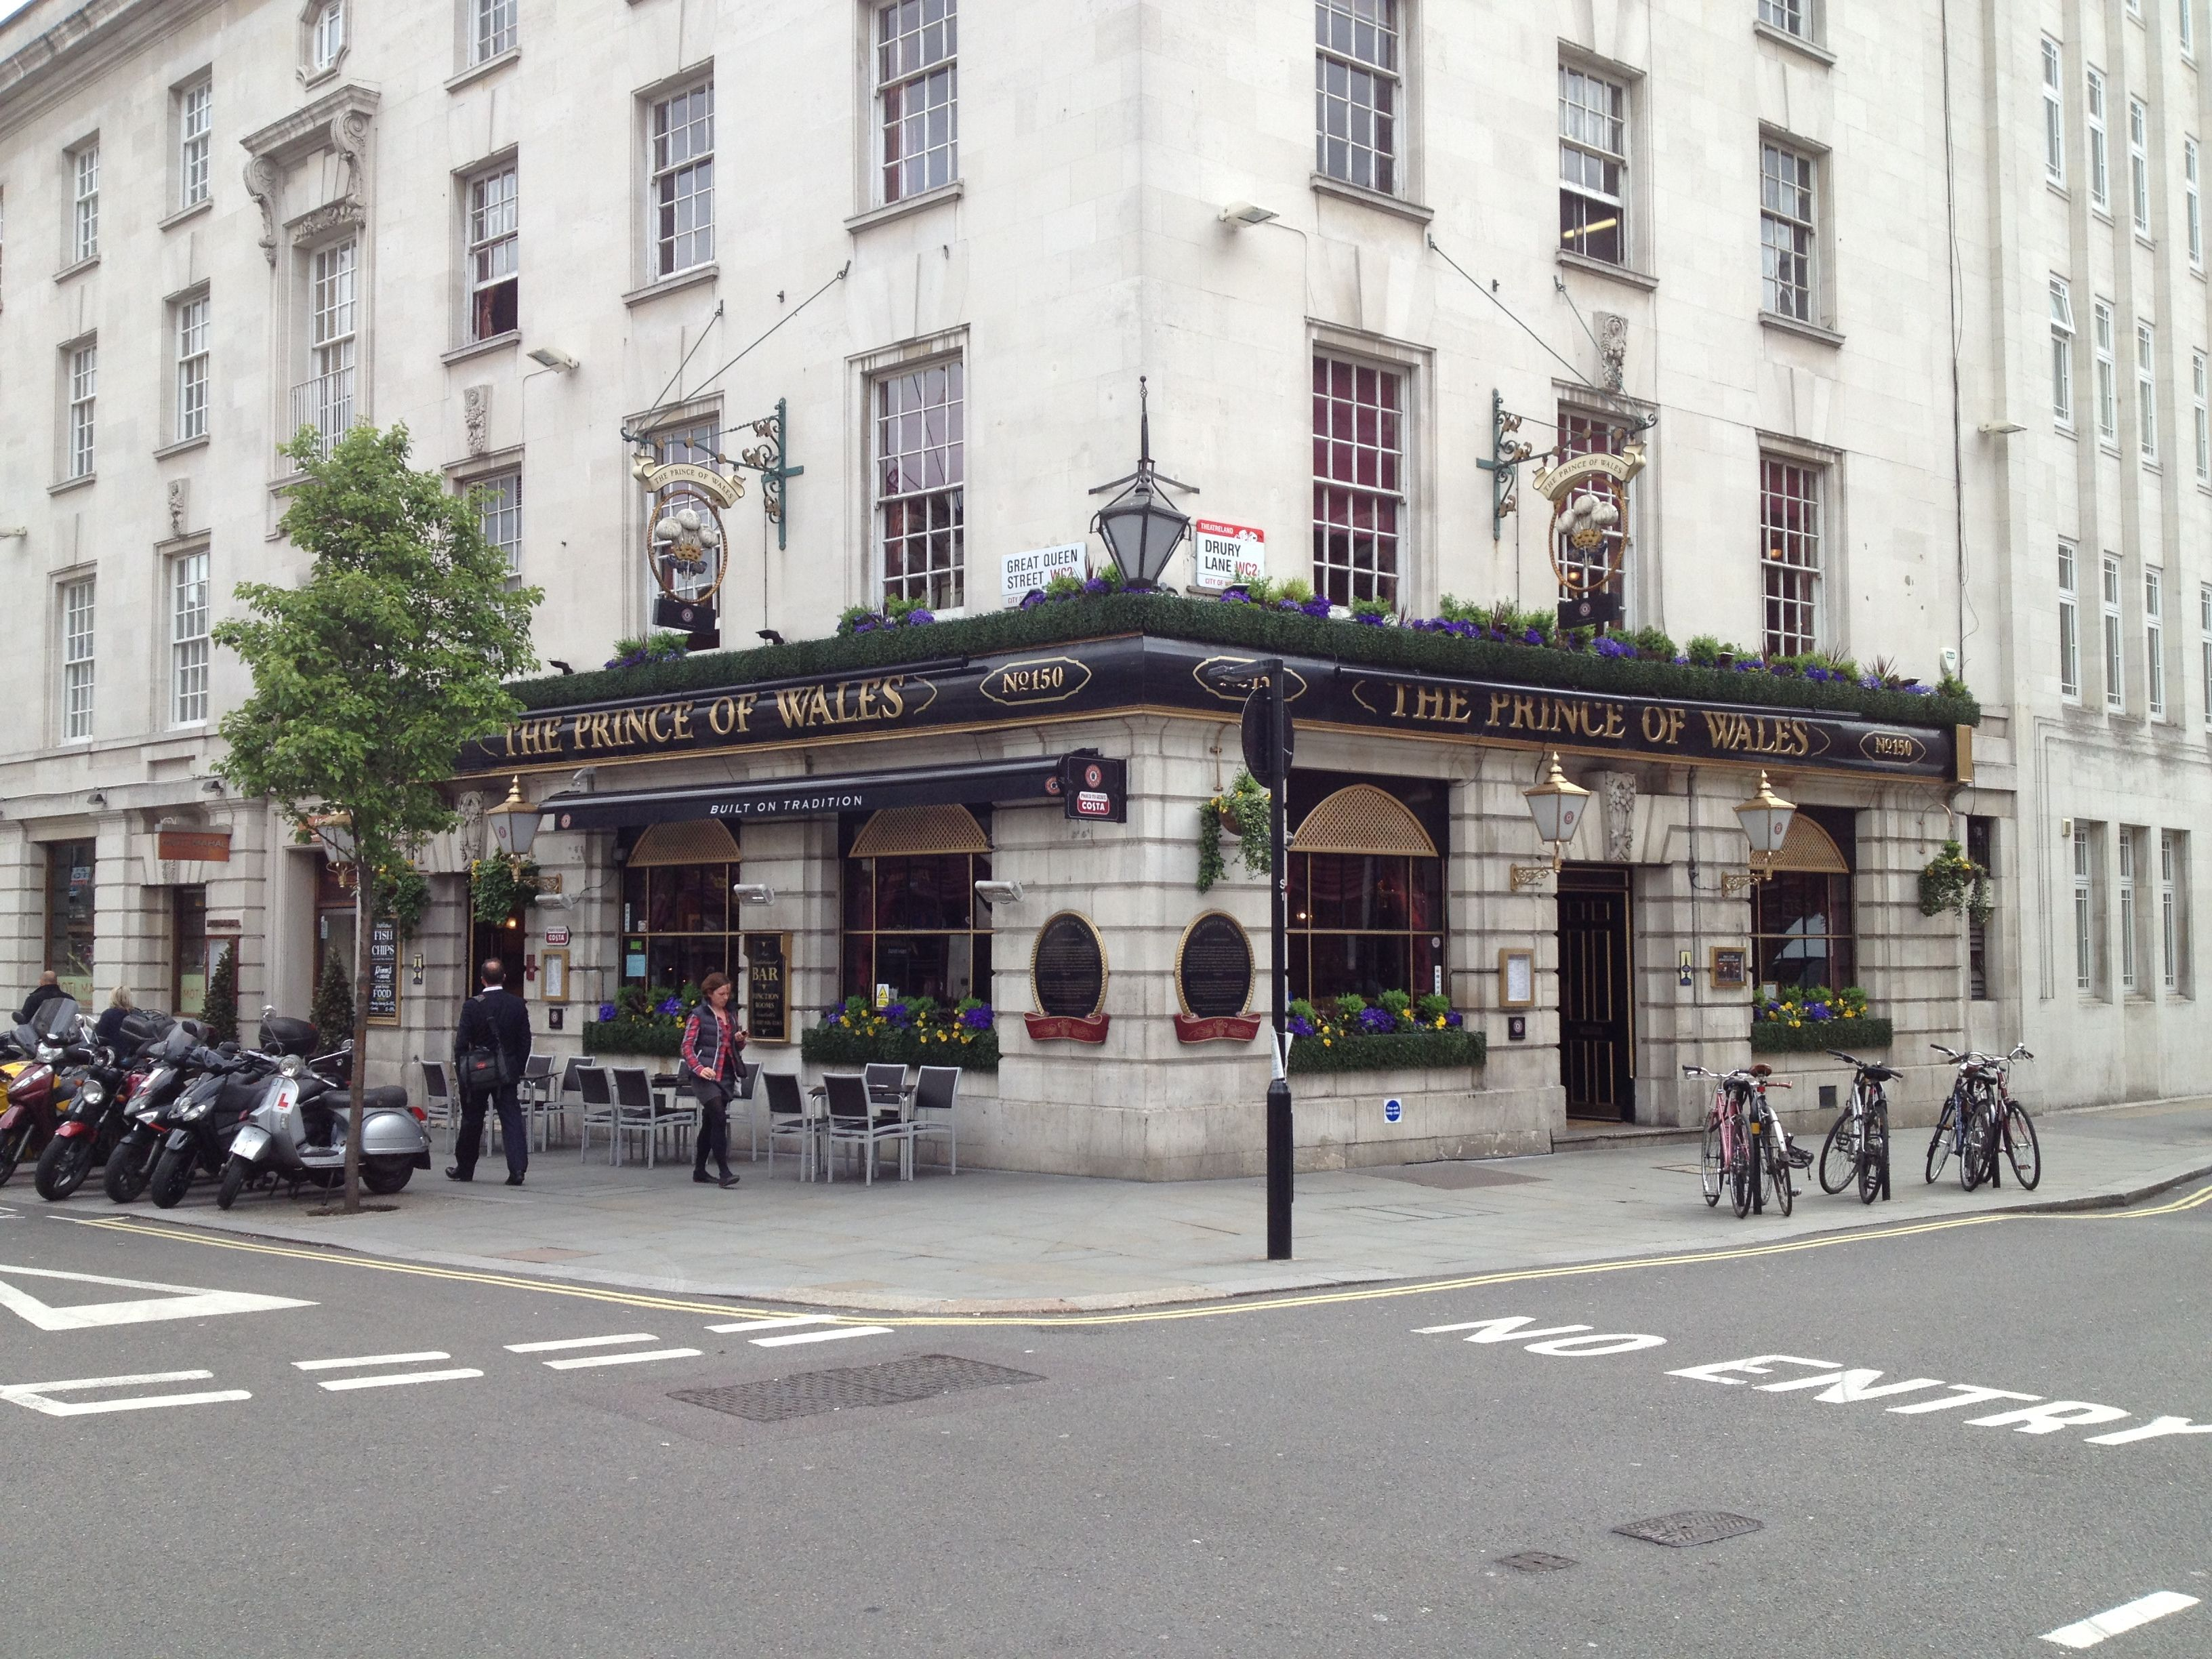 'The Prince of Wales' Pub, Covent Garden London street